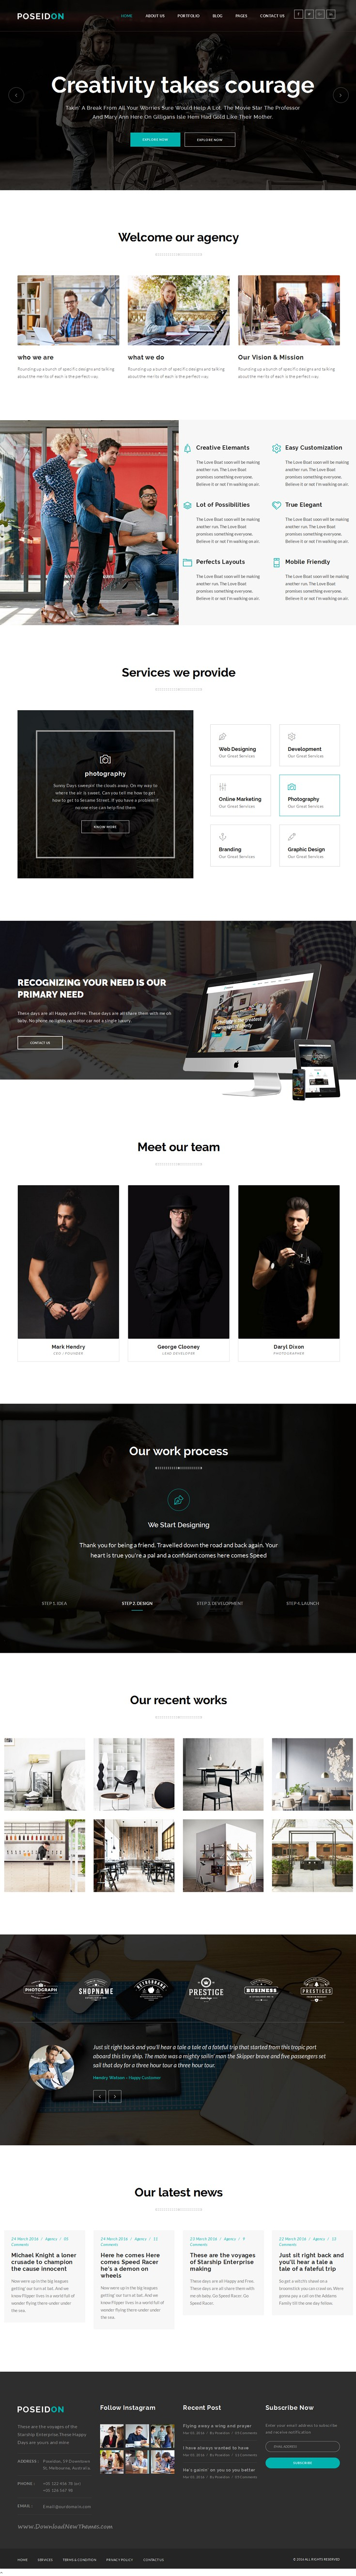 Poseidon is Multipurpose Responsive #Bootstrap HTML5 #Template for Business, #Corporate, Portfolio, Agency, Personal, Blog, Agency website. It has 25+ HTML pages, 3 homepage layouts and stunning features.